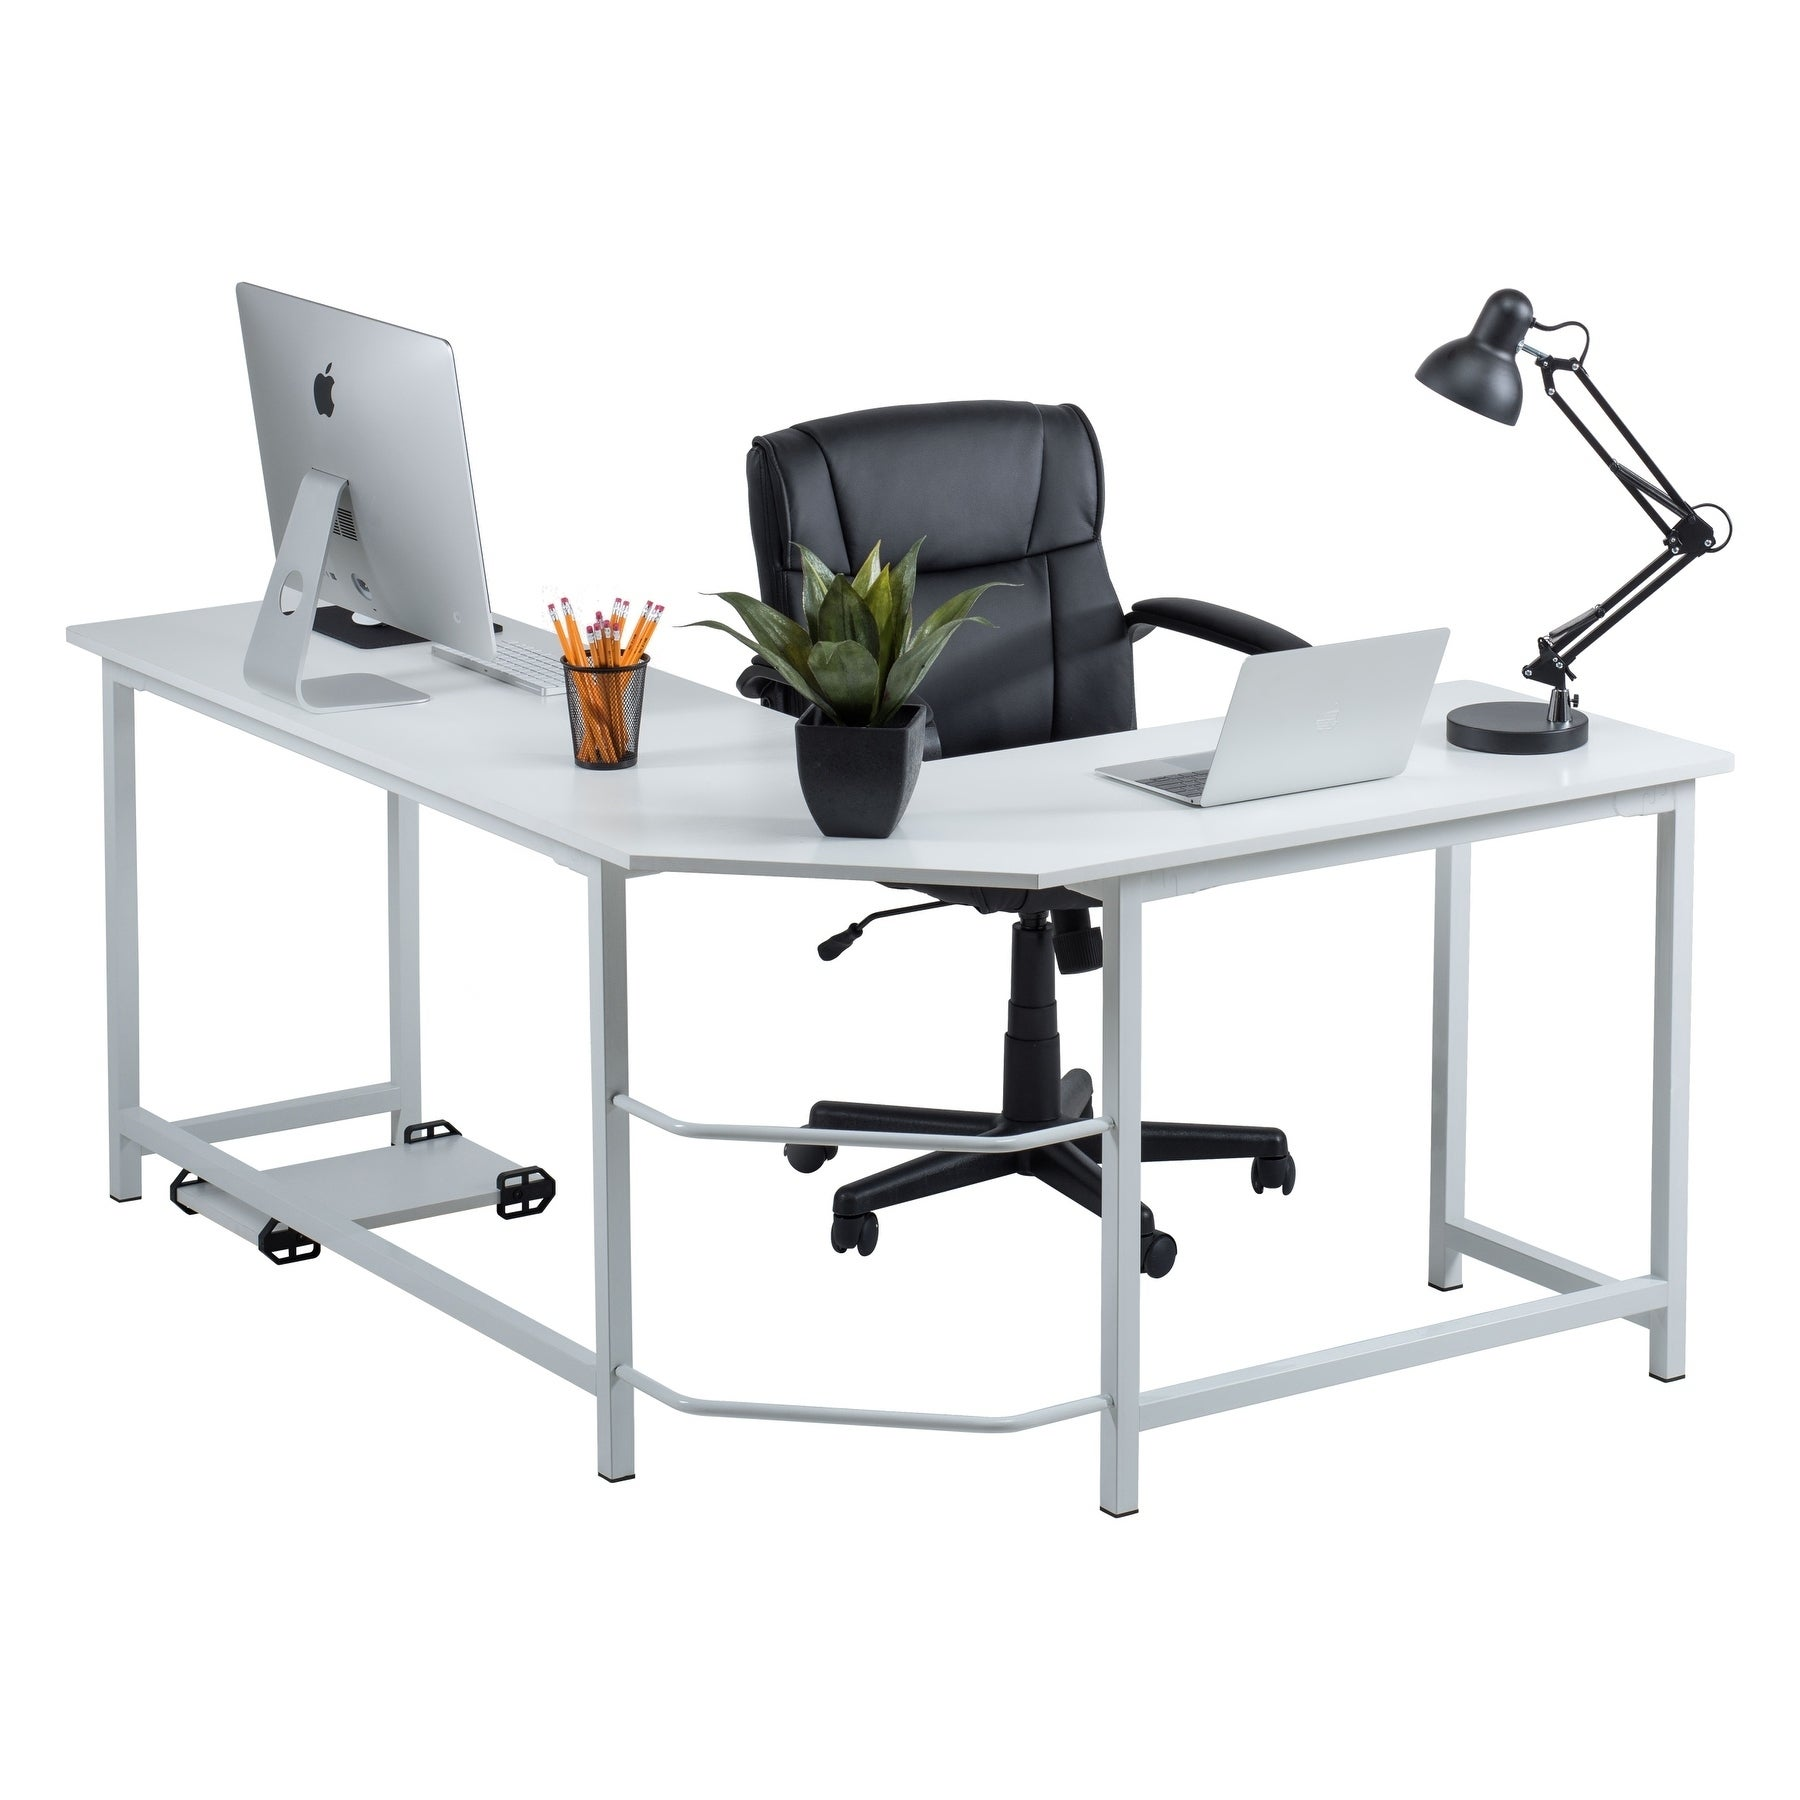 Fineboard L Shaped Office Computer Corner Desk   Free Shipping Today    Overstock   24849097